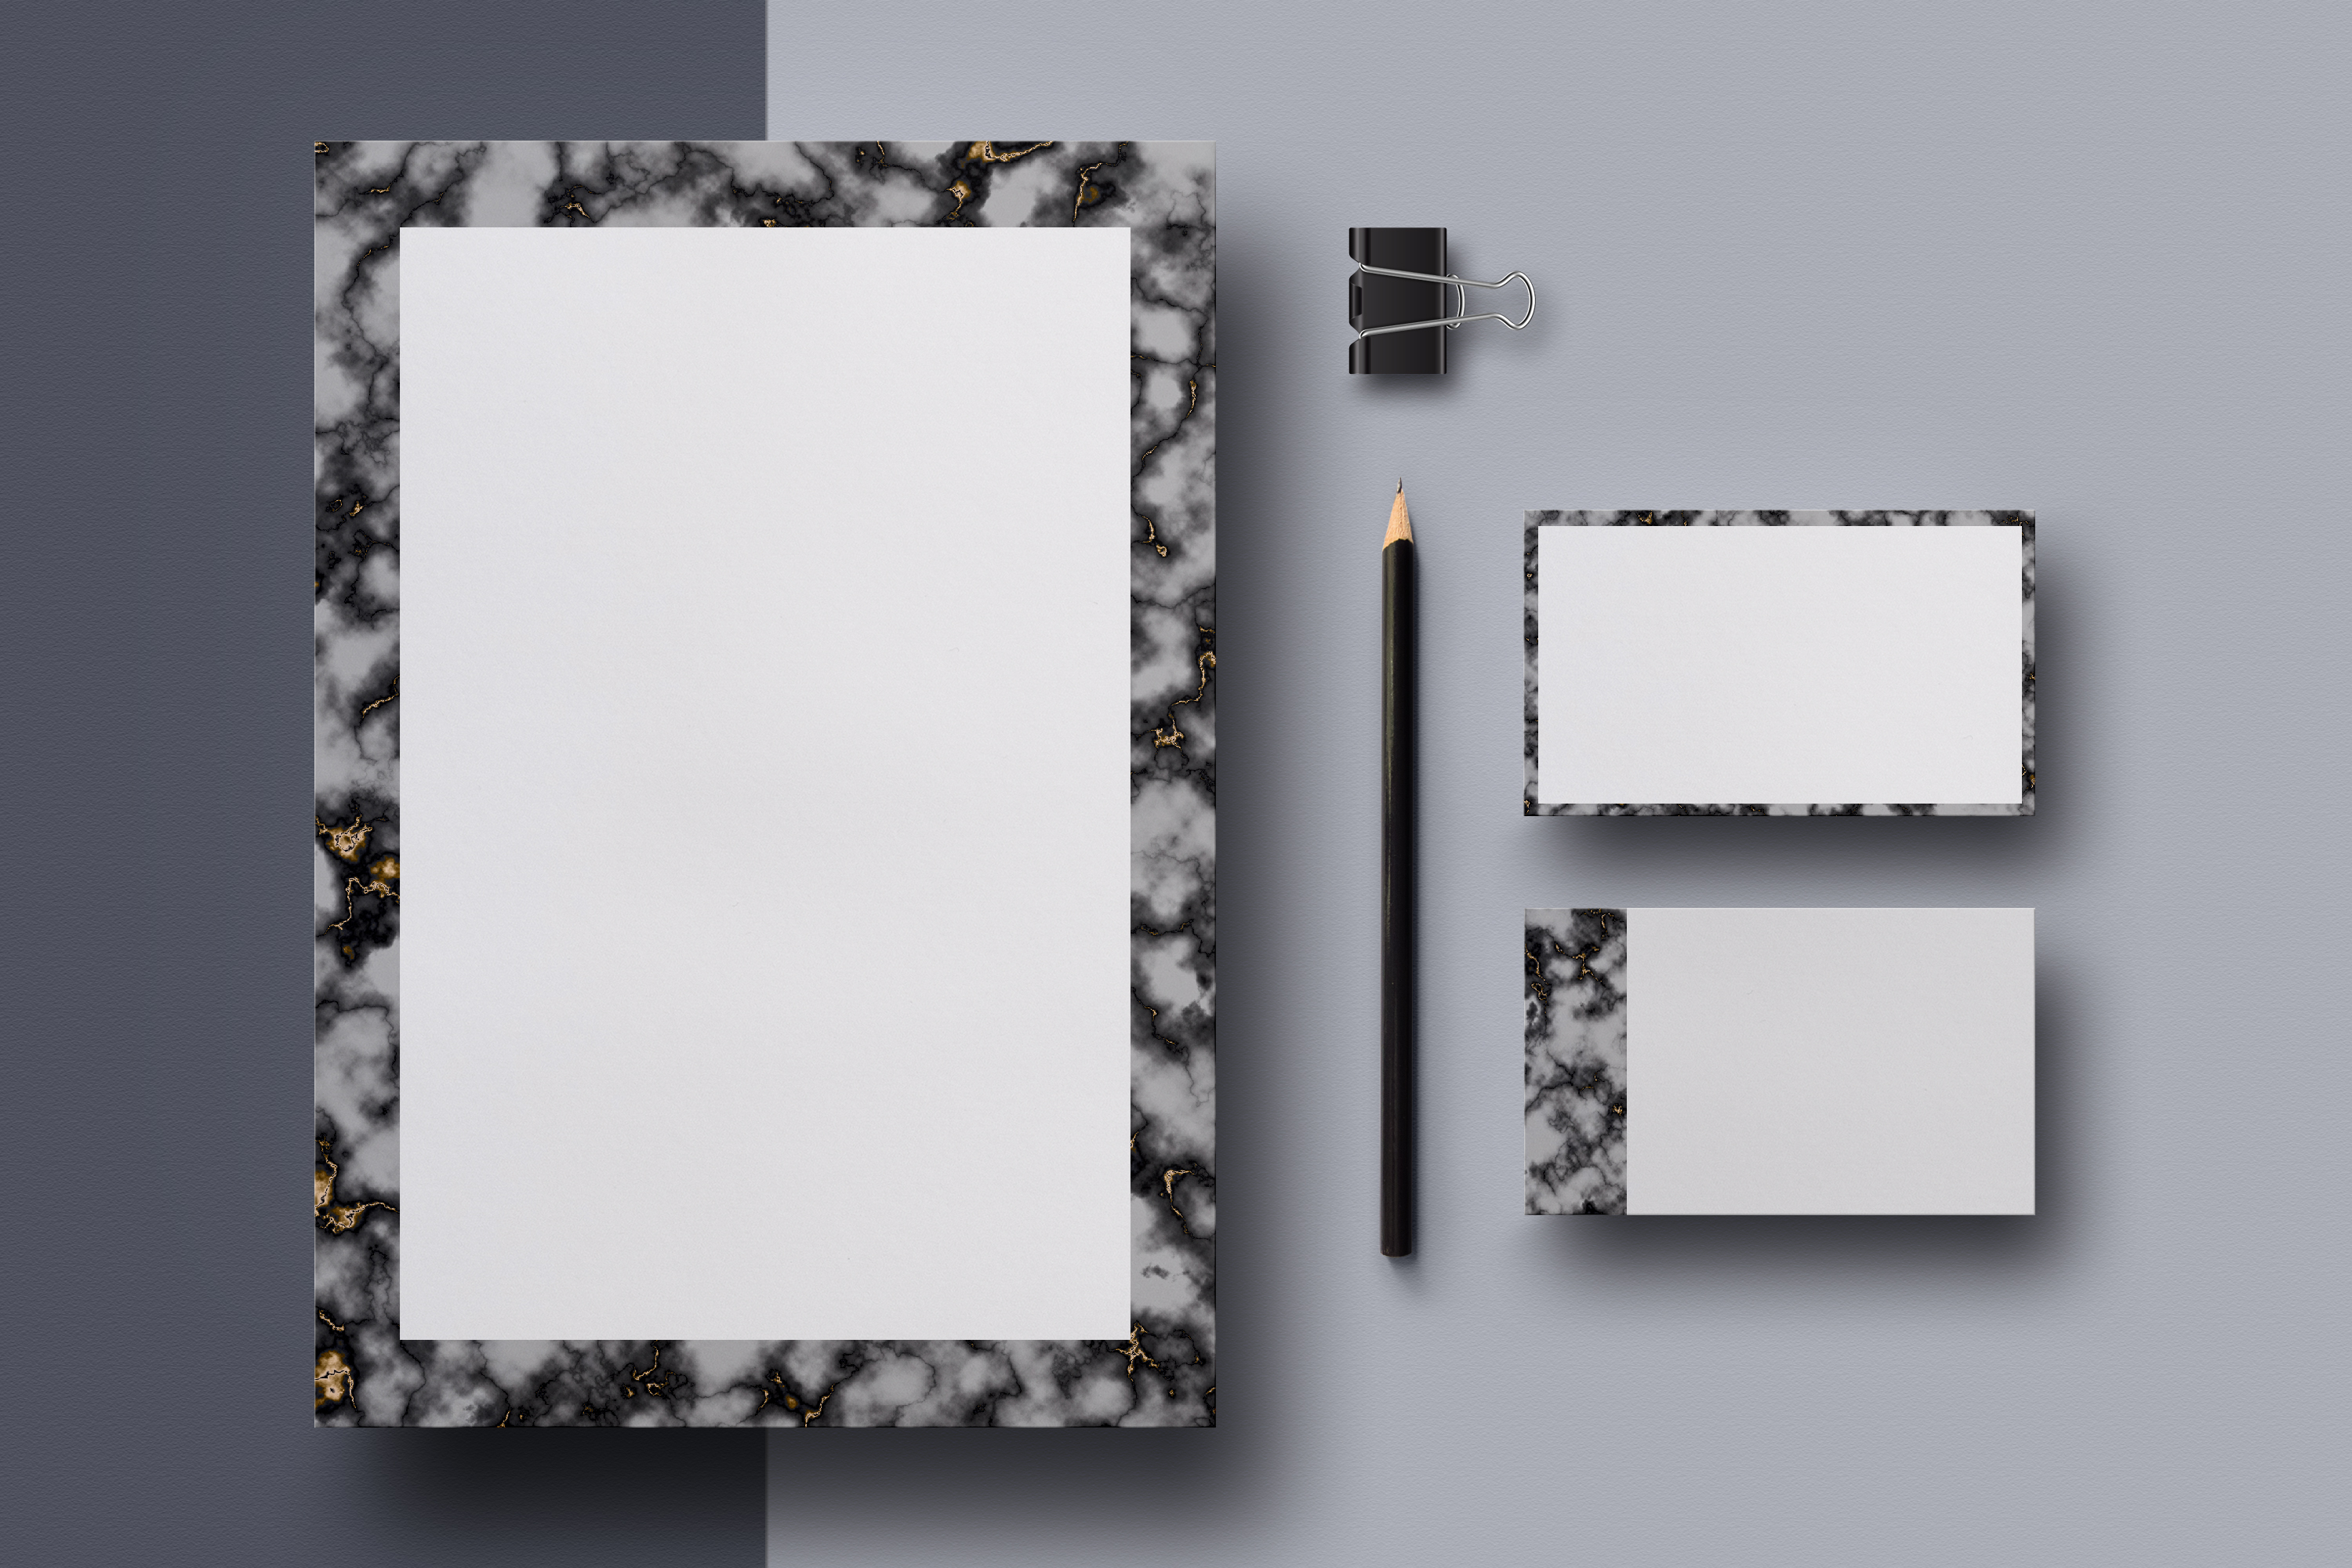 30 Realistic Marble Textures - JPG example image 7